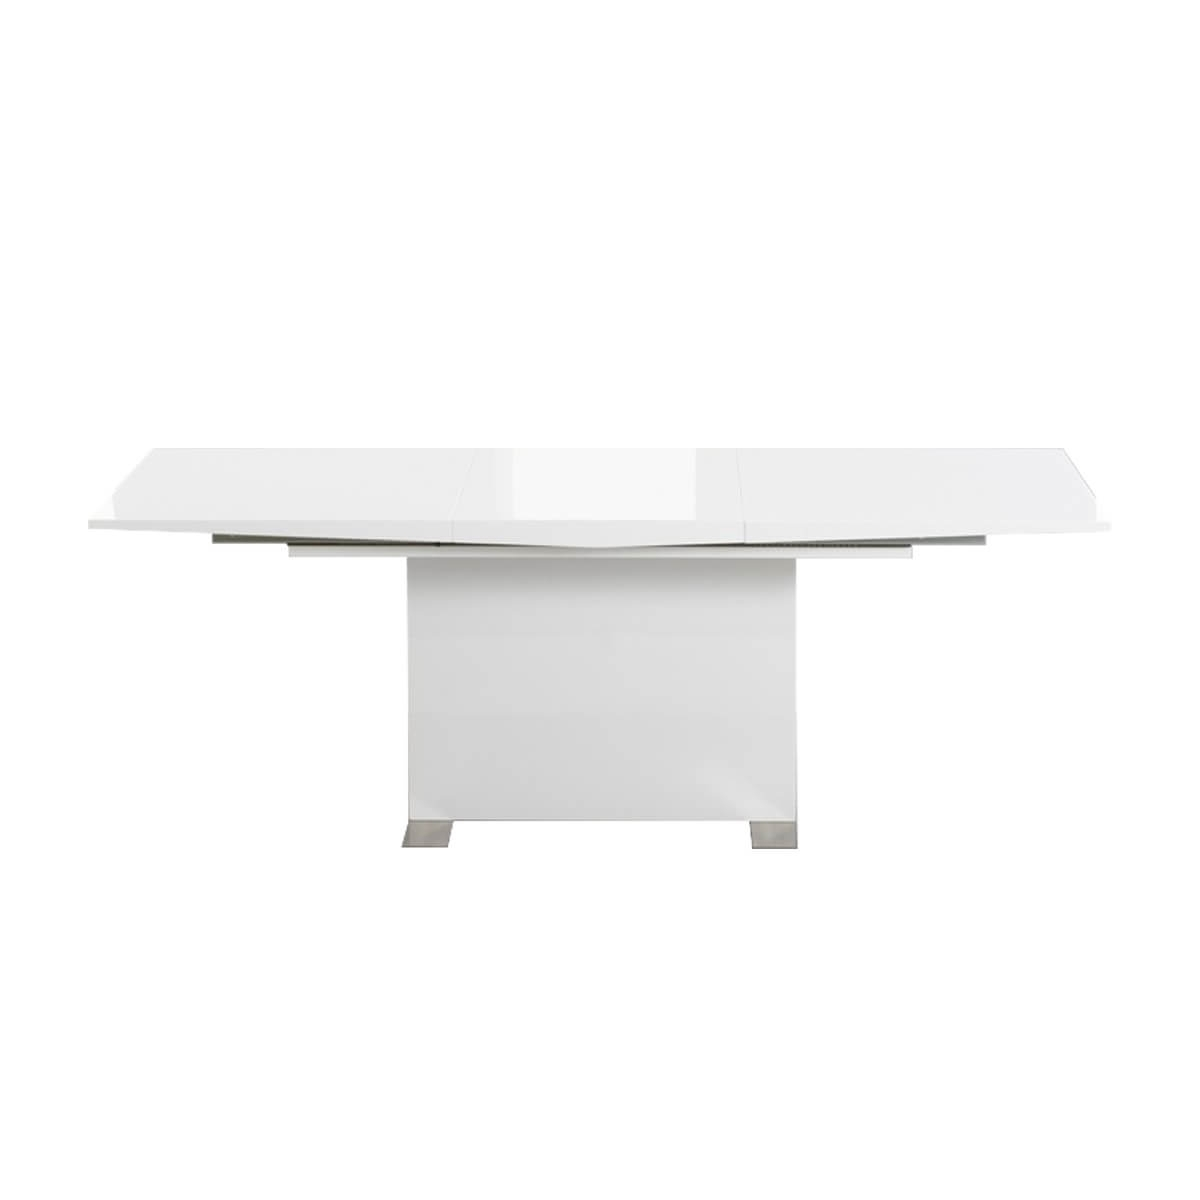 Cheap White High Gloss Dining Tables Inside 2018 Marila 6 8 Seater White High Gloss Extending Dining Table (View 3 of 25)